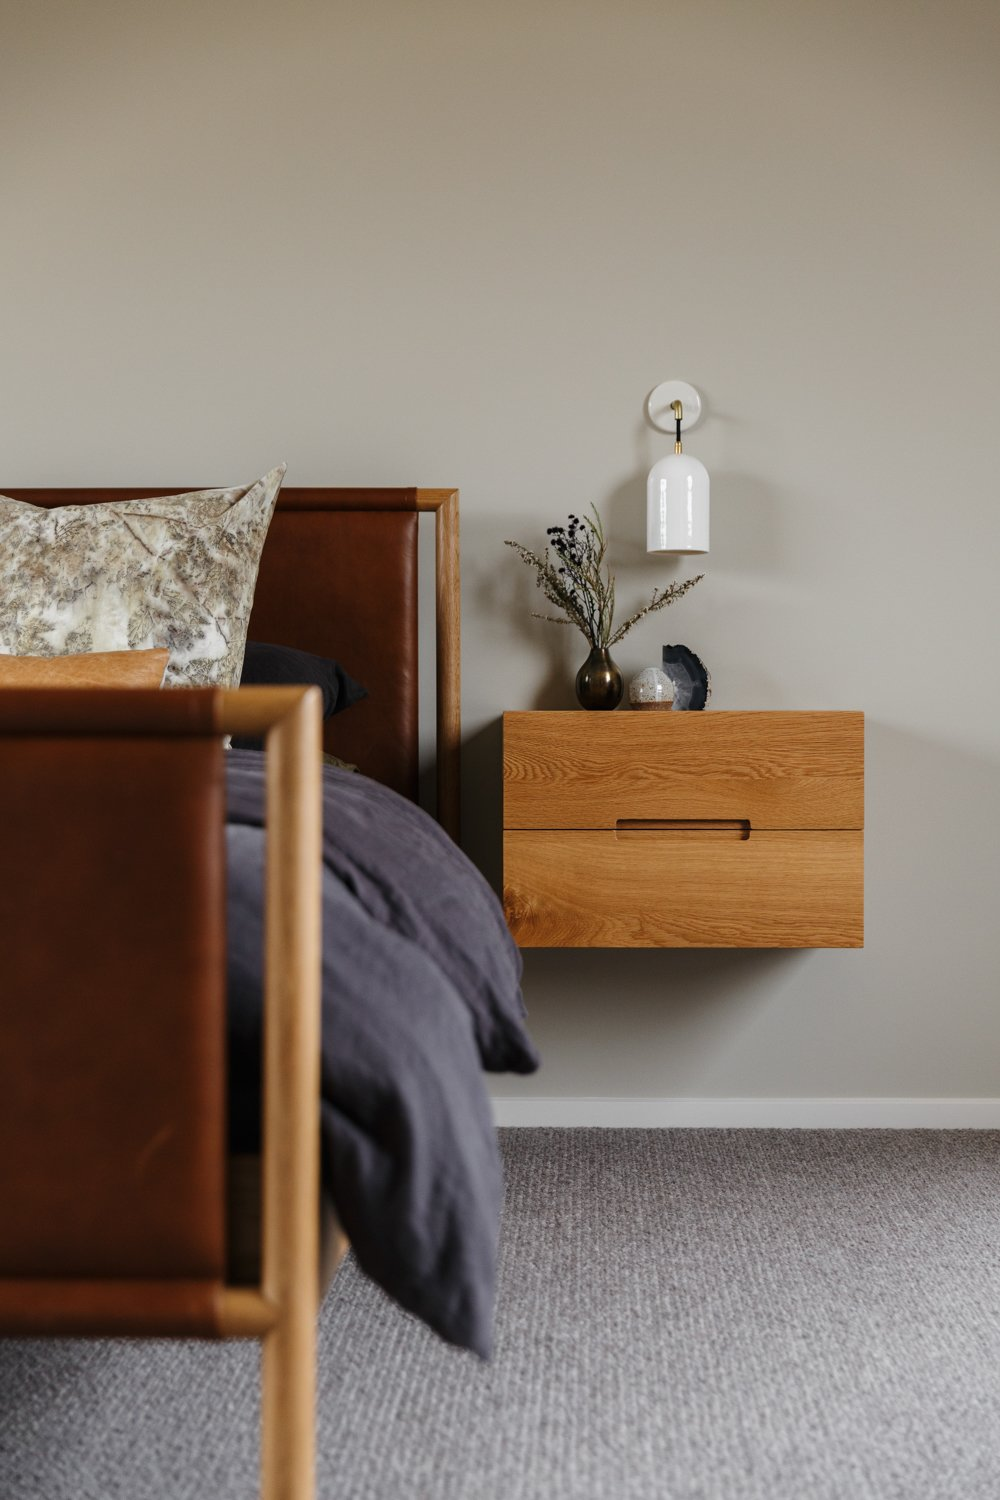 Bedroom, Bed, Night Stands, and Carpet Floor  Photo 8 of 11 in The Surrounding Countryside Inspires a Family Home in Australia's Adelaide Hills